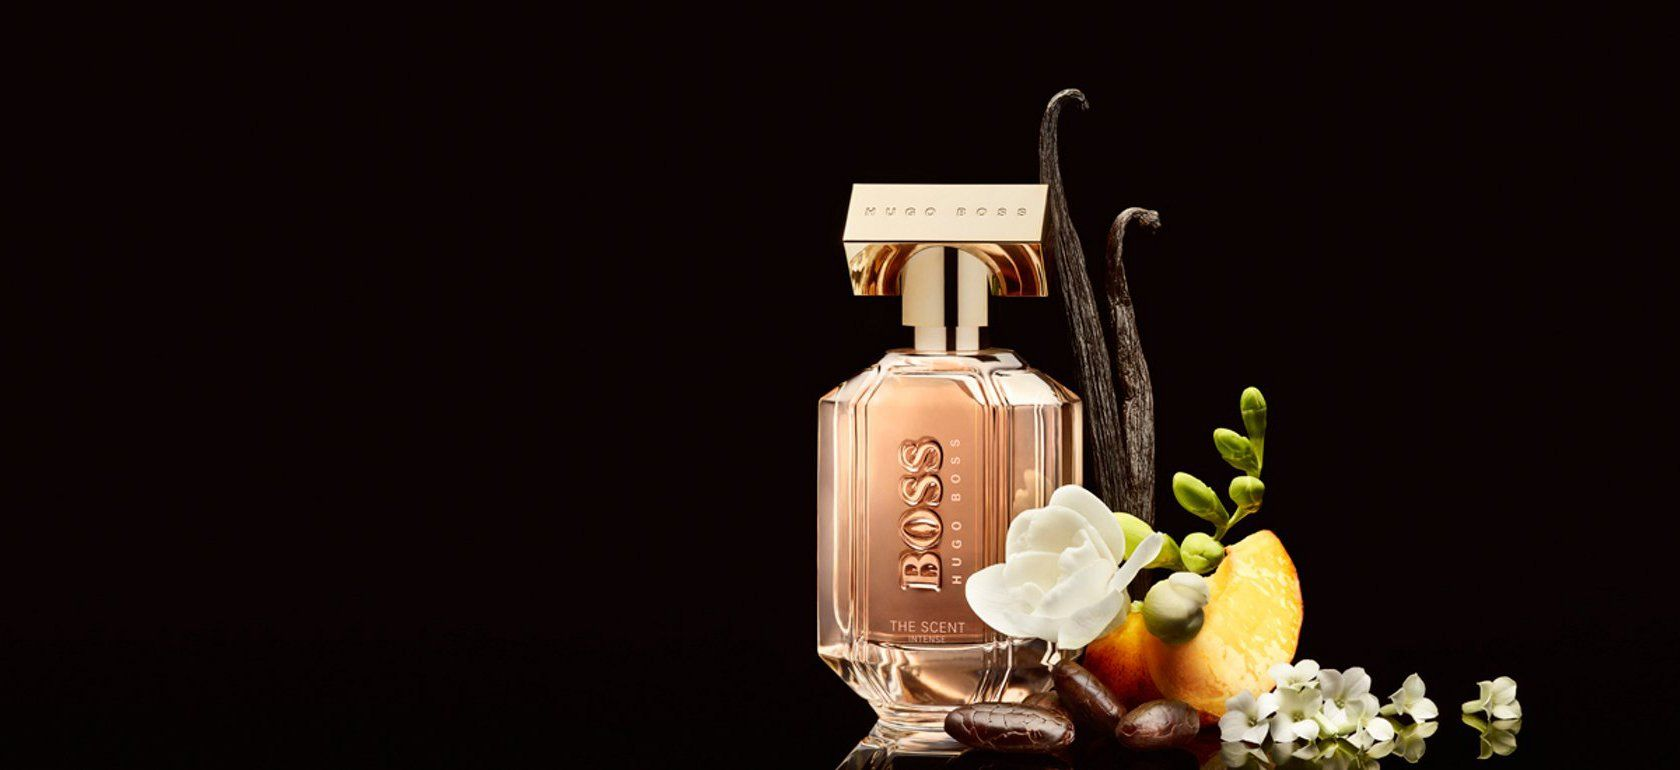 Introducing Hugo Boss The Scent For Her | Boss the scent, Hugo boss,  Fragrance